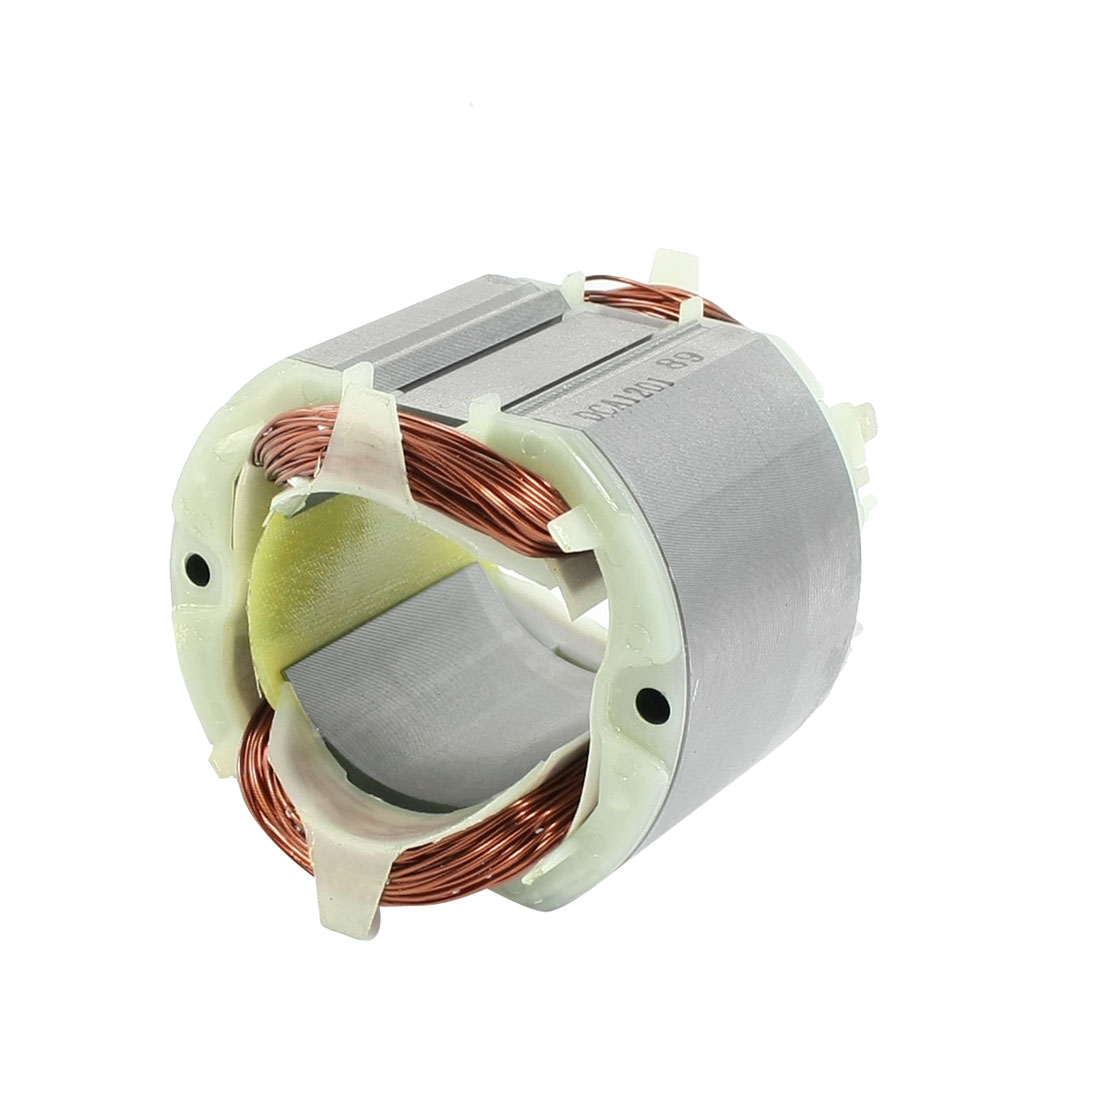 AC 220V Power Tool Electric Router Replacement Motor Stator DCA M1R-FF04-12